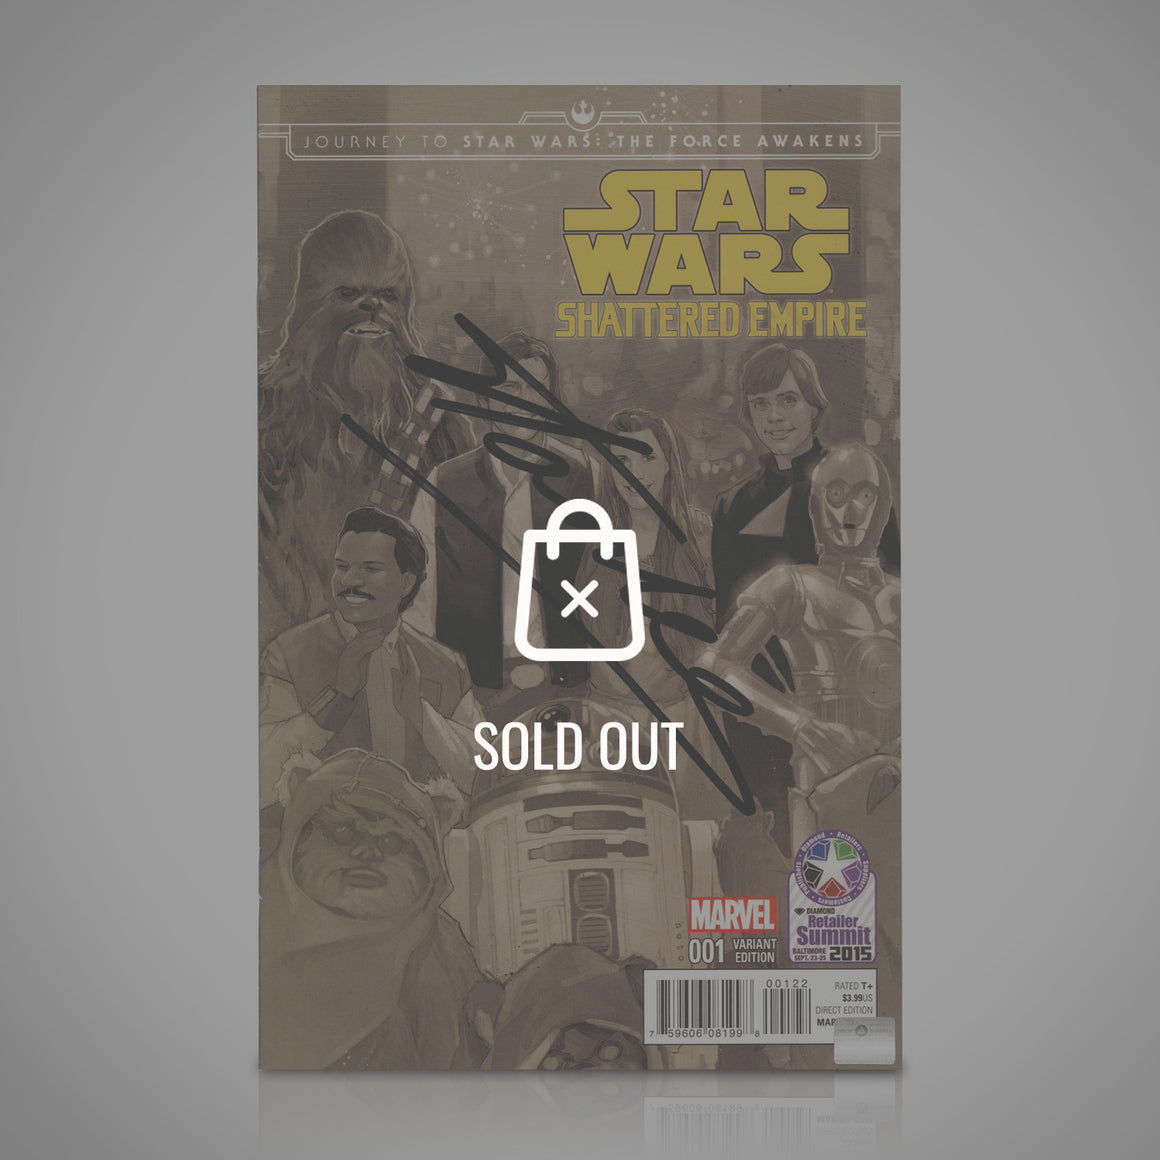 STAR WARS - Hand-Signed comic by Stan Lee